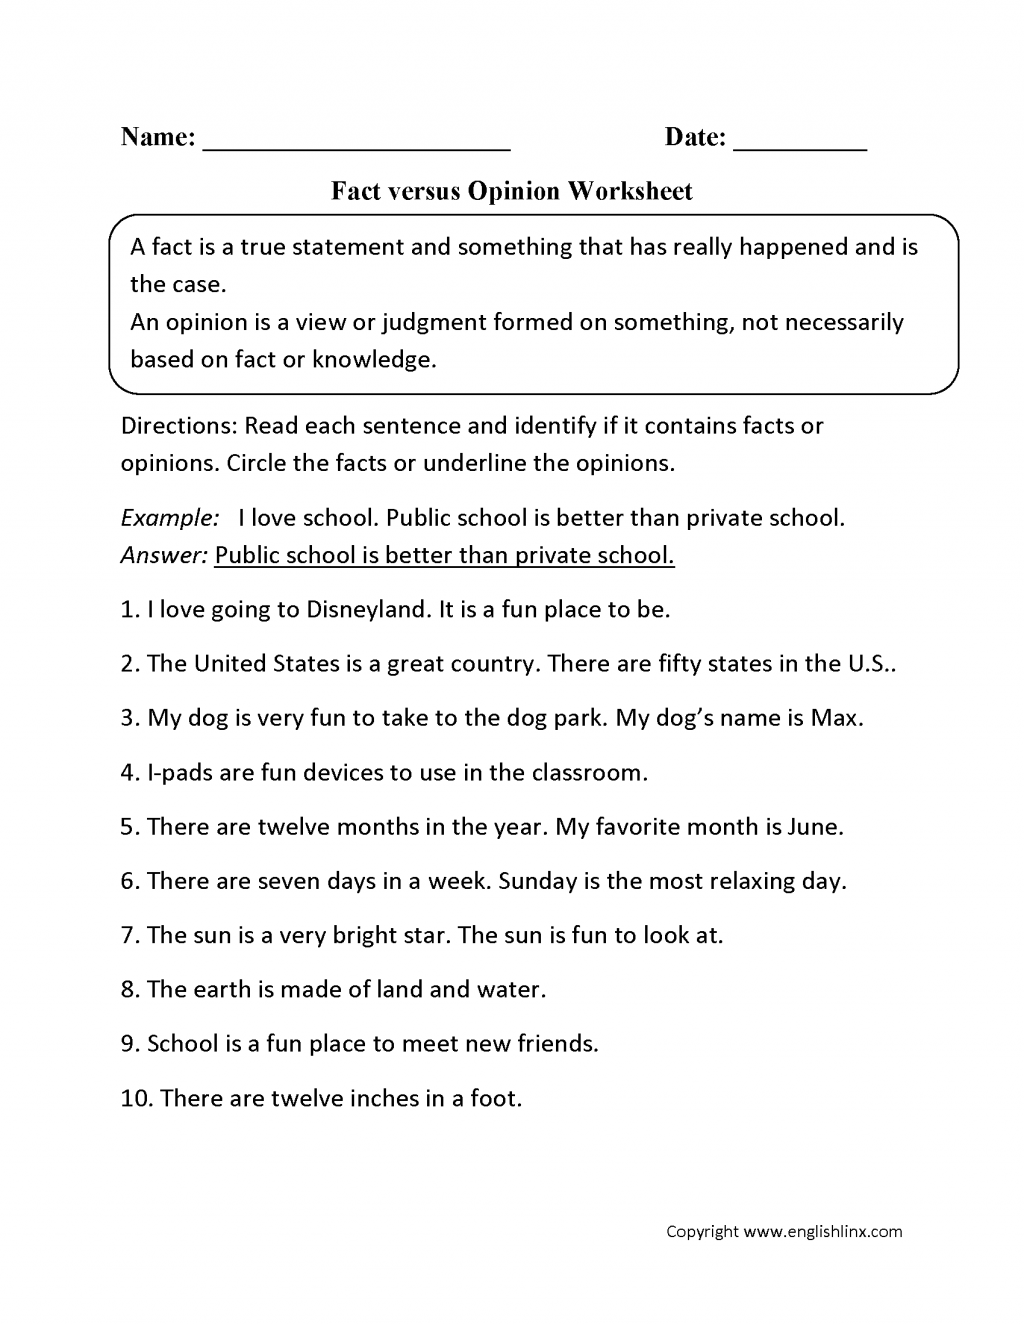 Fact And Opinion Worksheets To Free Download Fact And